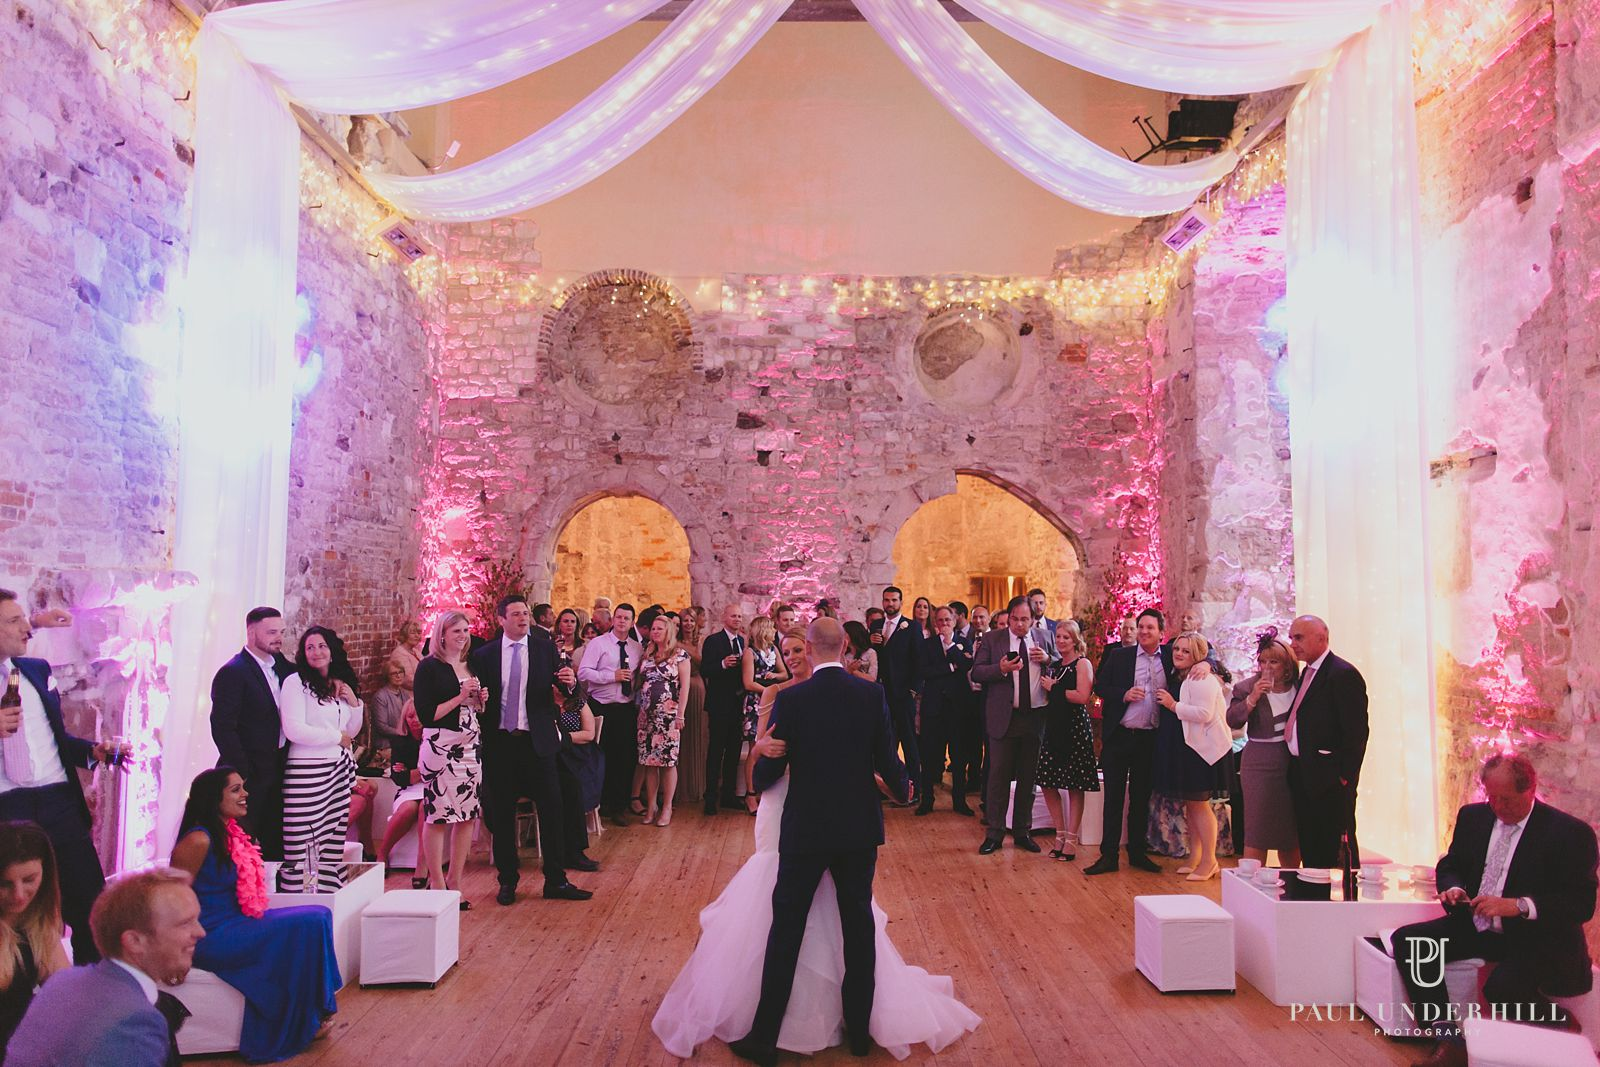 Lulworth Castle wedding at night